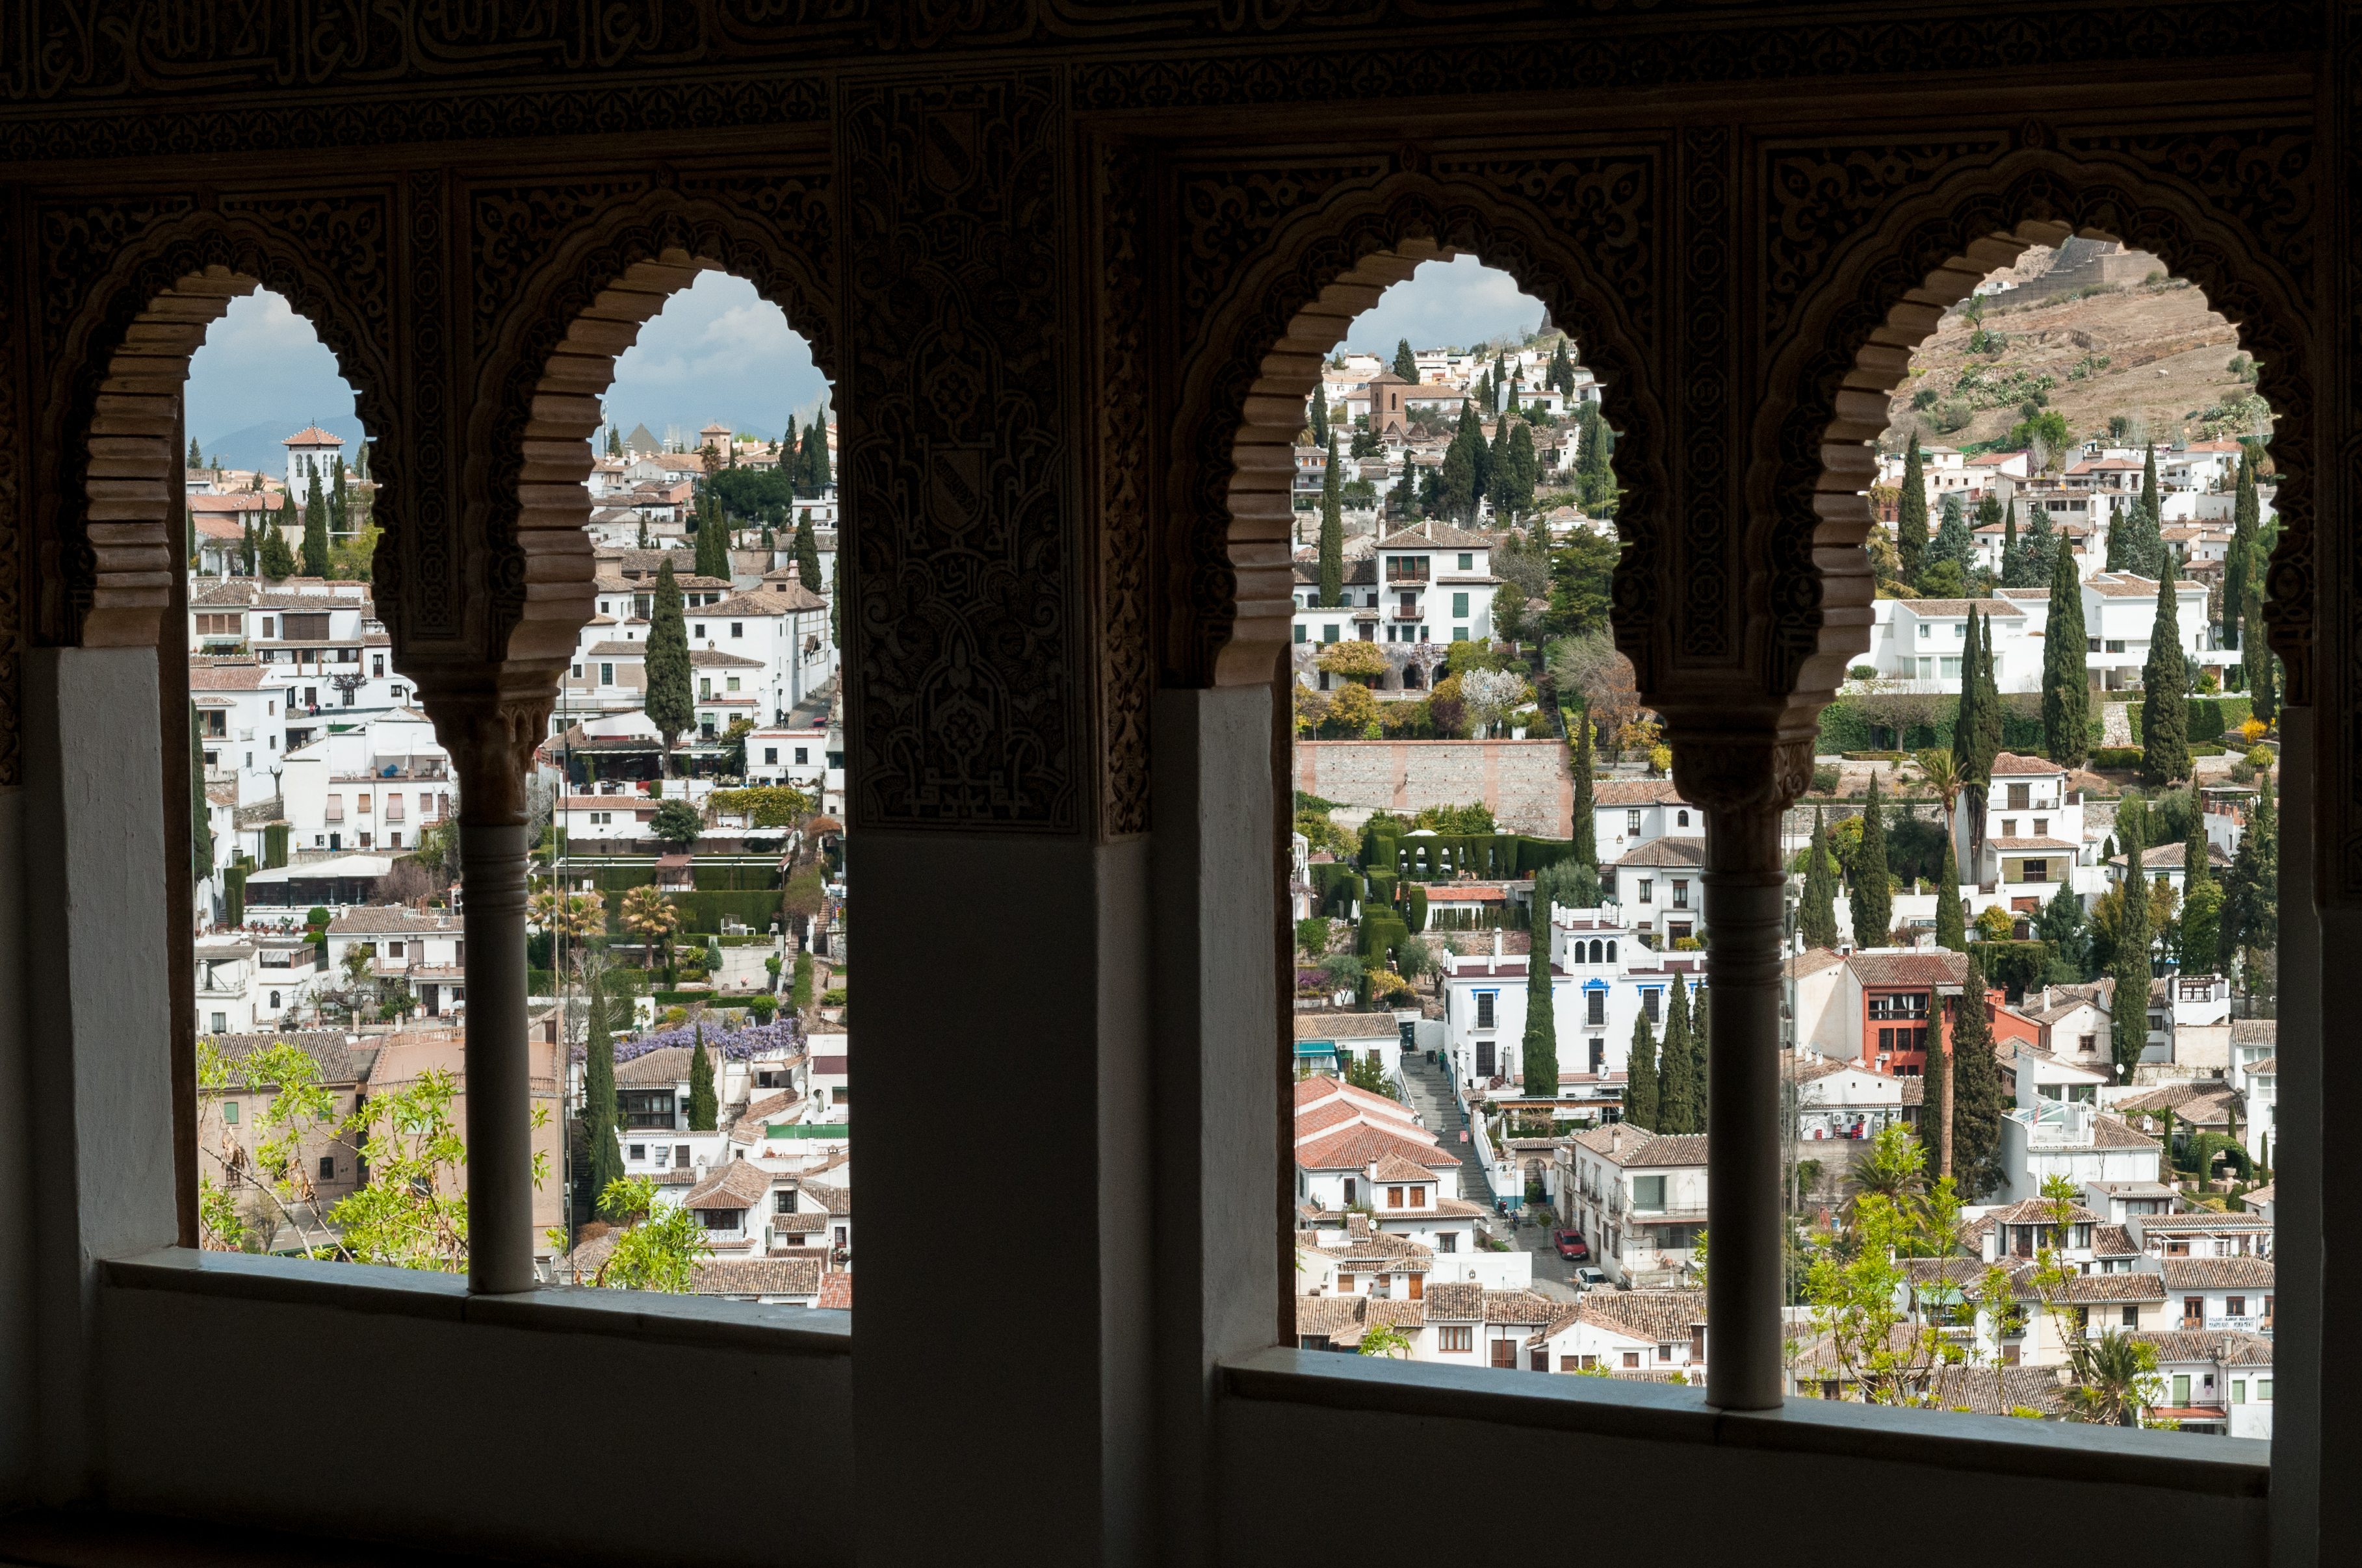 guided visit to the Alhambra and the Generalife